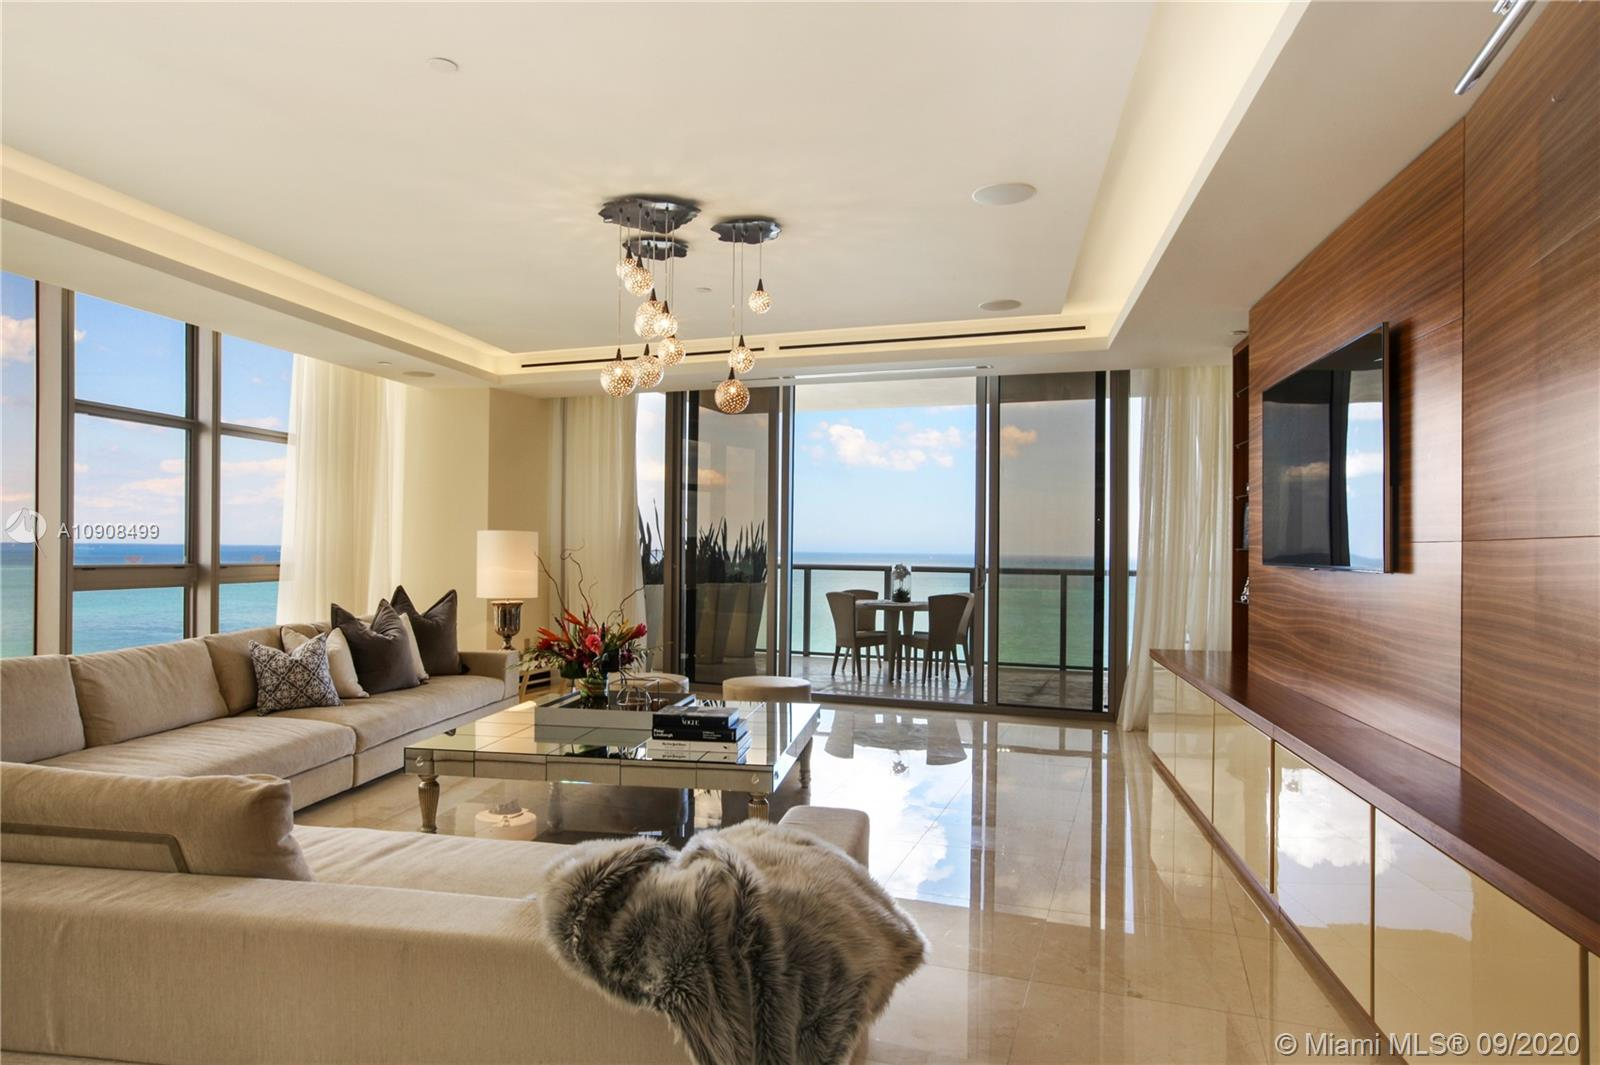 9705  Collins Ave #1001N For Sale A10908499, FL